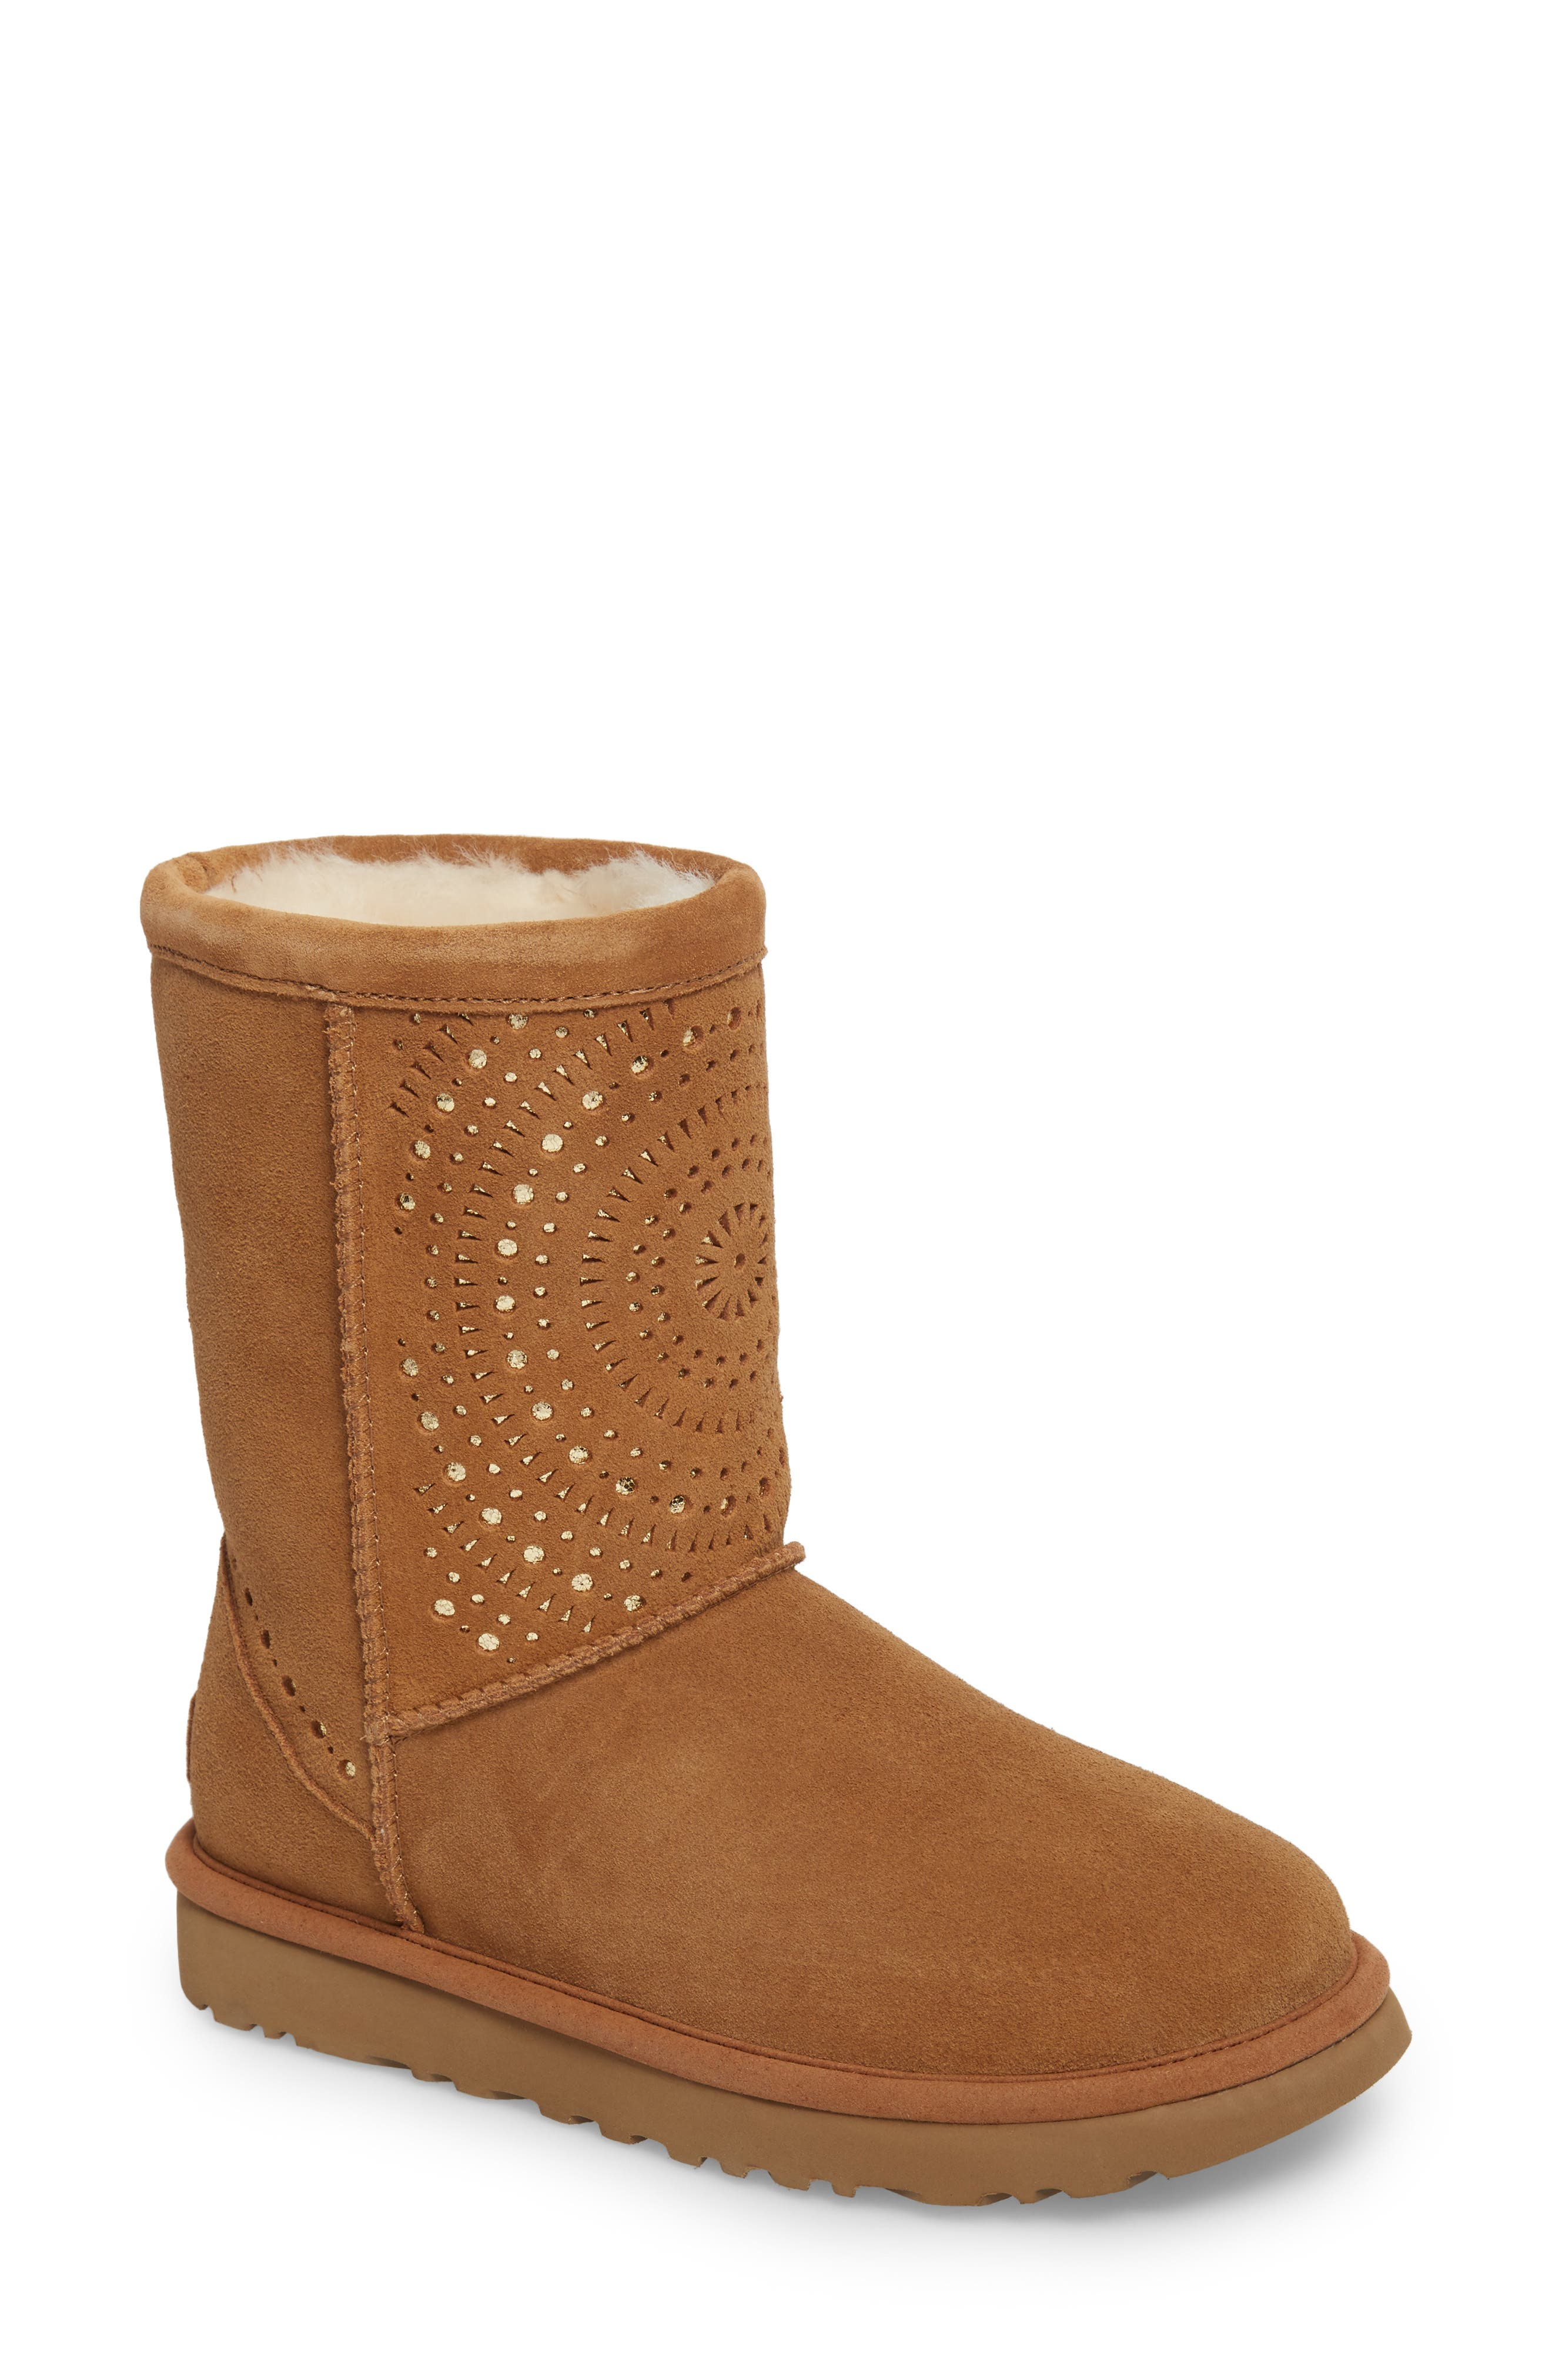 Alternate Image 1 Selected - UGG® Classic Short Sunshine Perforated Boot (Women)